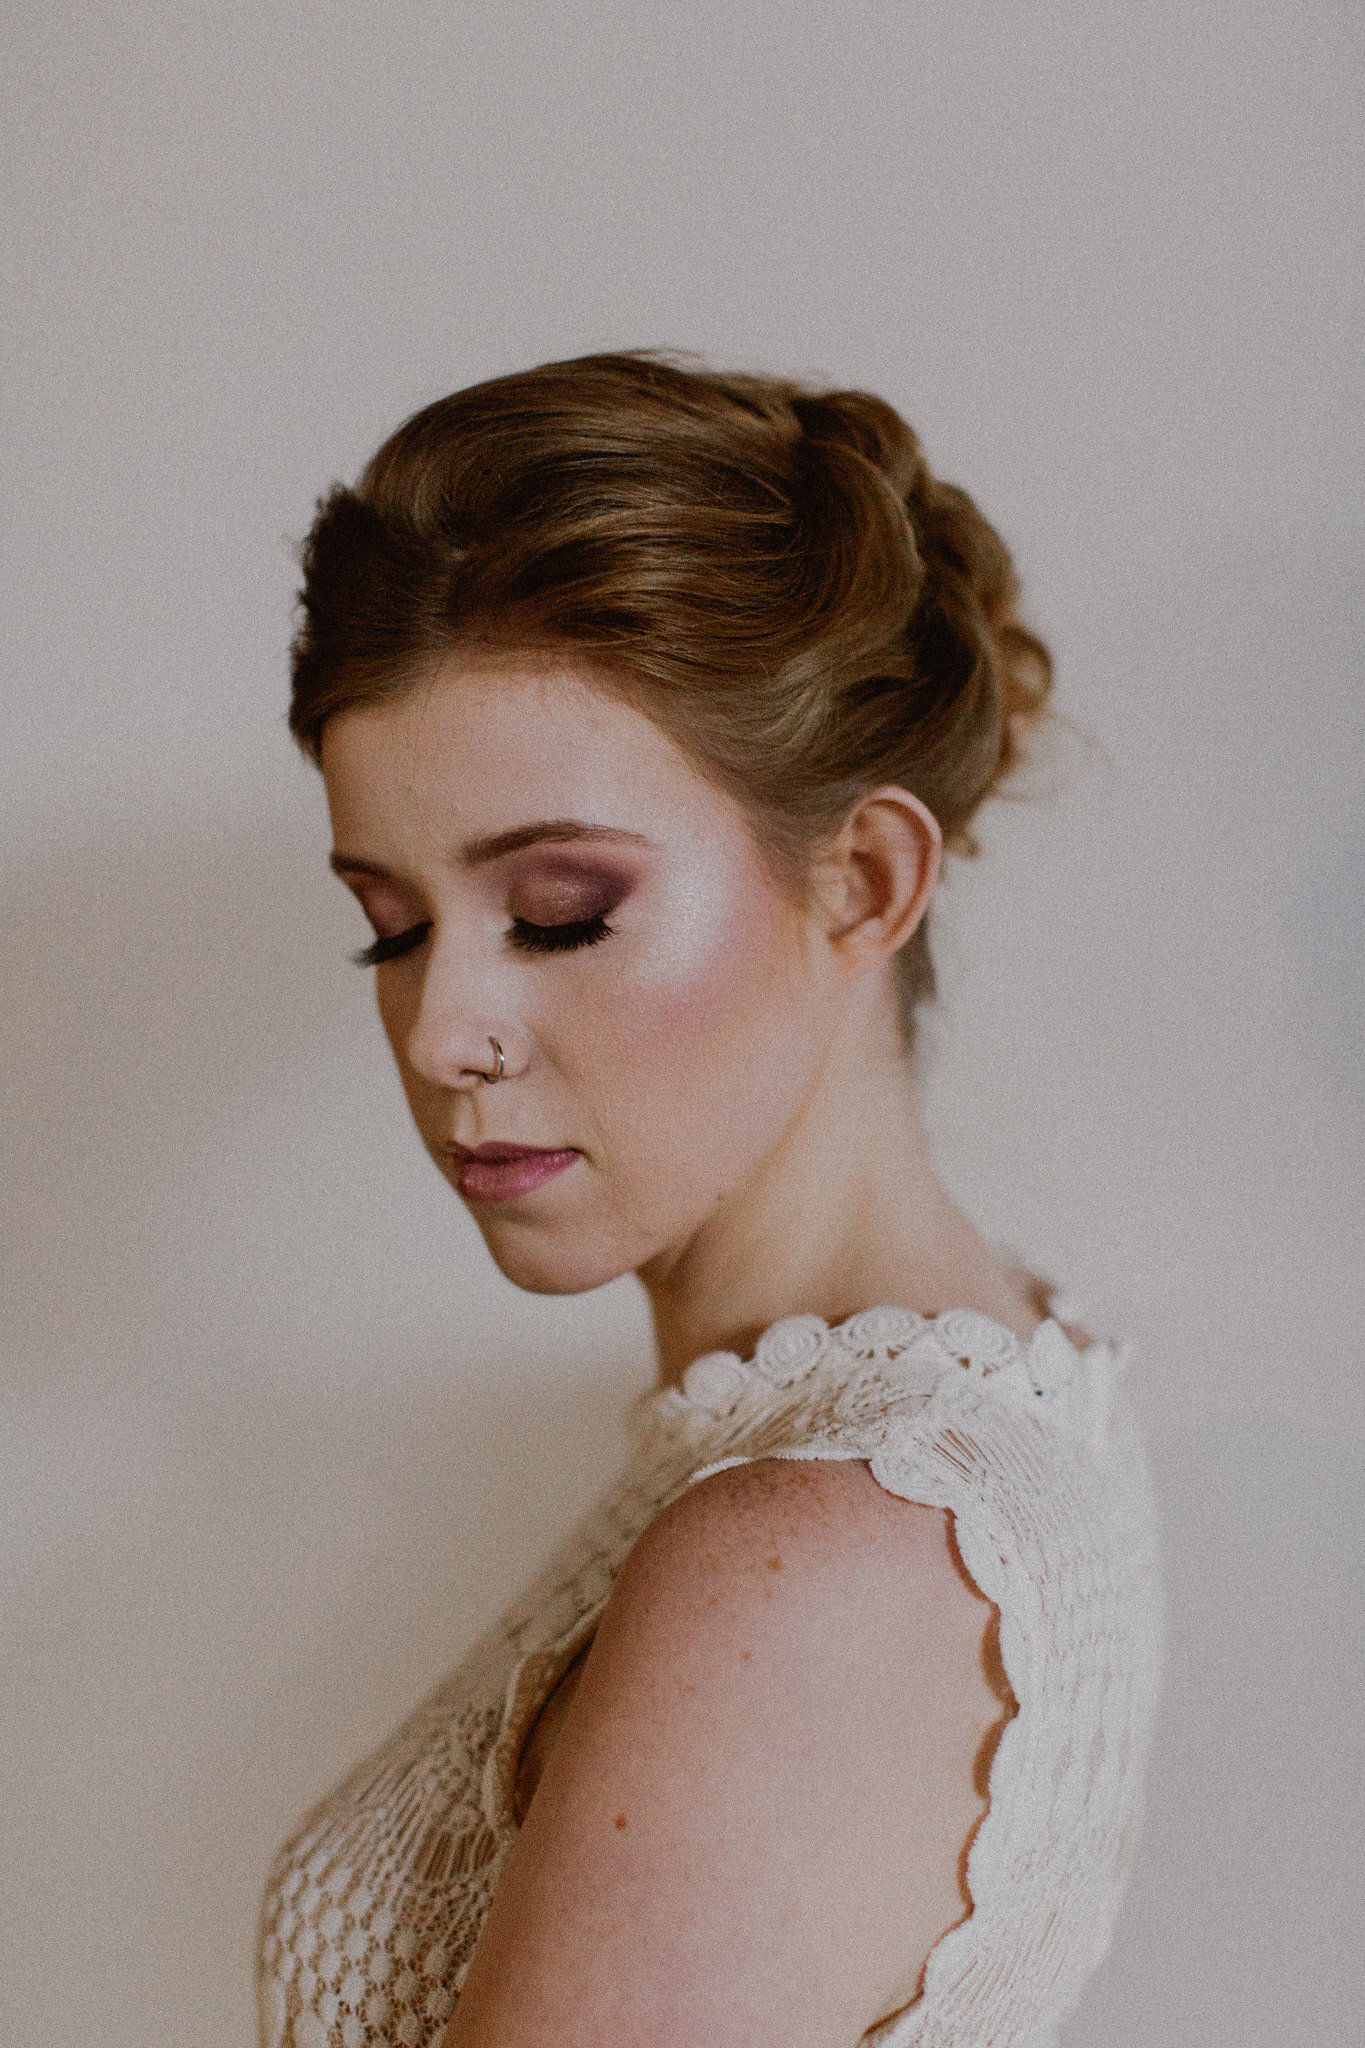 Romantic Bridal updo hairstyle + makeup | College Station hair + makeup artist Naturally Flawless | Bryan, Texas | Pink + Purple + Vintage + Romantic + Blush + crochet + two piece wedding dress | Wedding Coordinator Epoch Co+